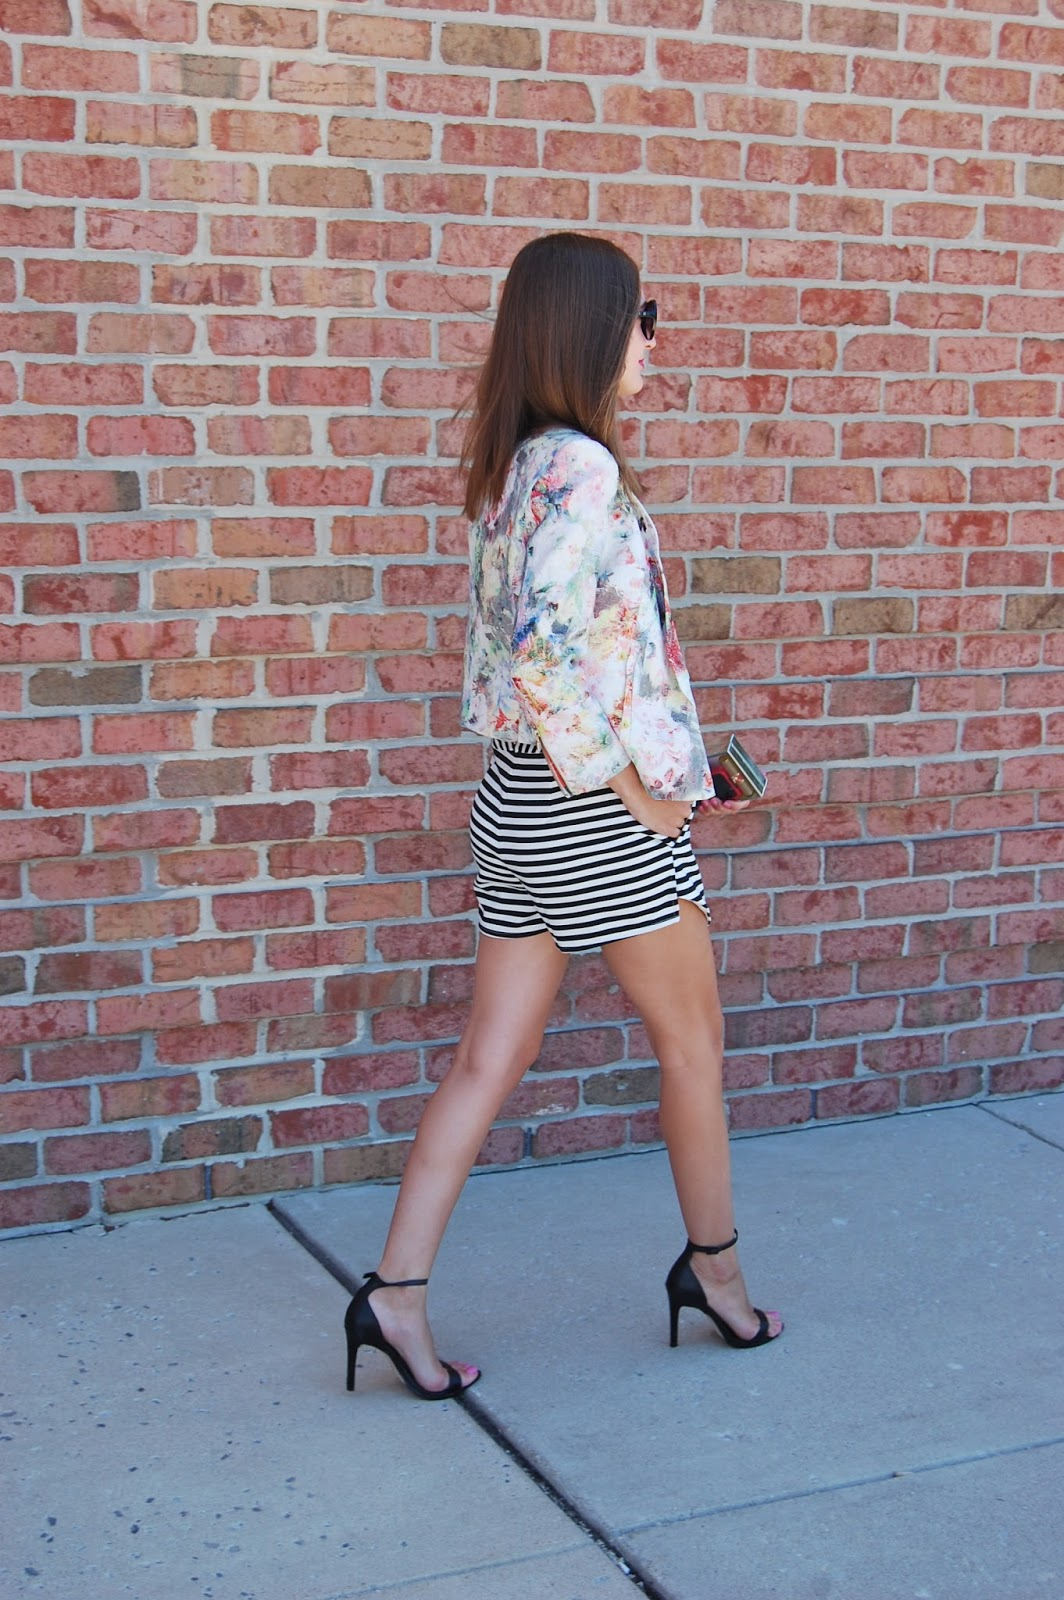 Wearing Zara floral blazer, The Mint Julep Boutique Striped Skort, Zara Black ankle strap heels. Skort trend 2014, pattern mixing